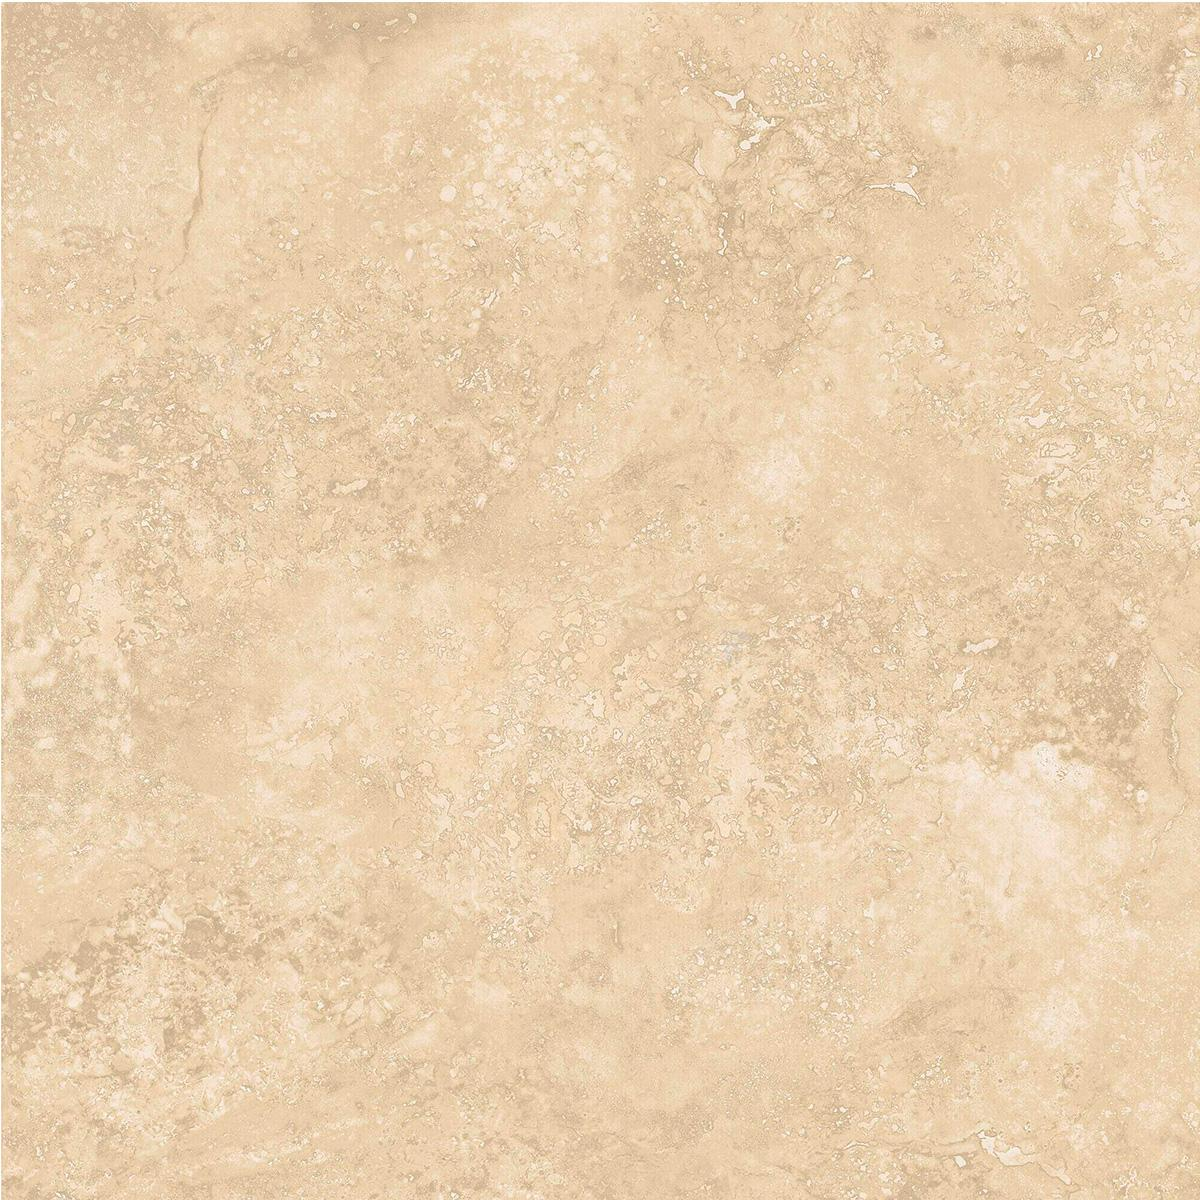 Gres Porcelánico Mineral Stone Beige Mate - 61X61 cm - 1.48 m2